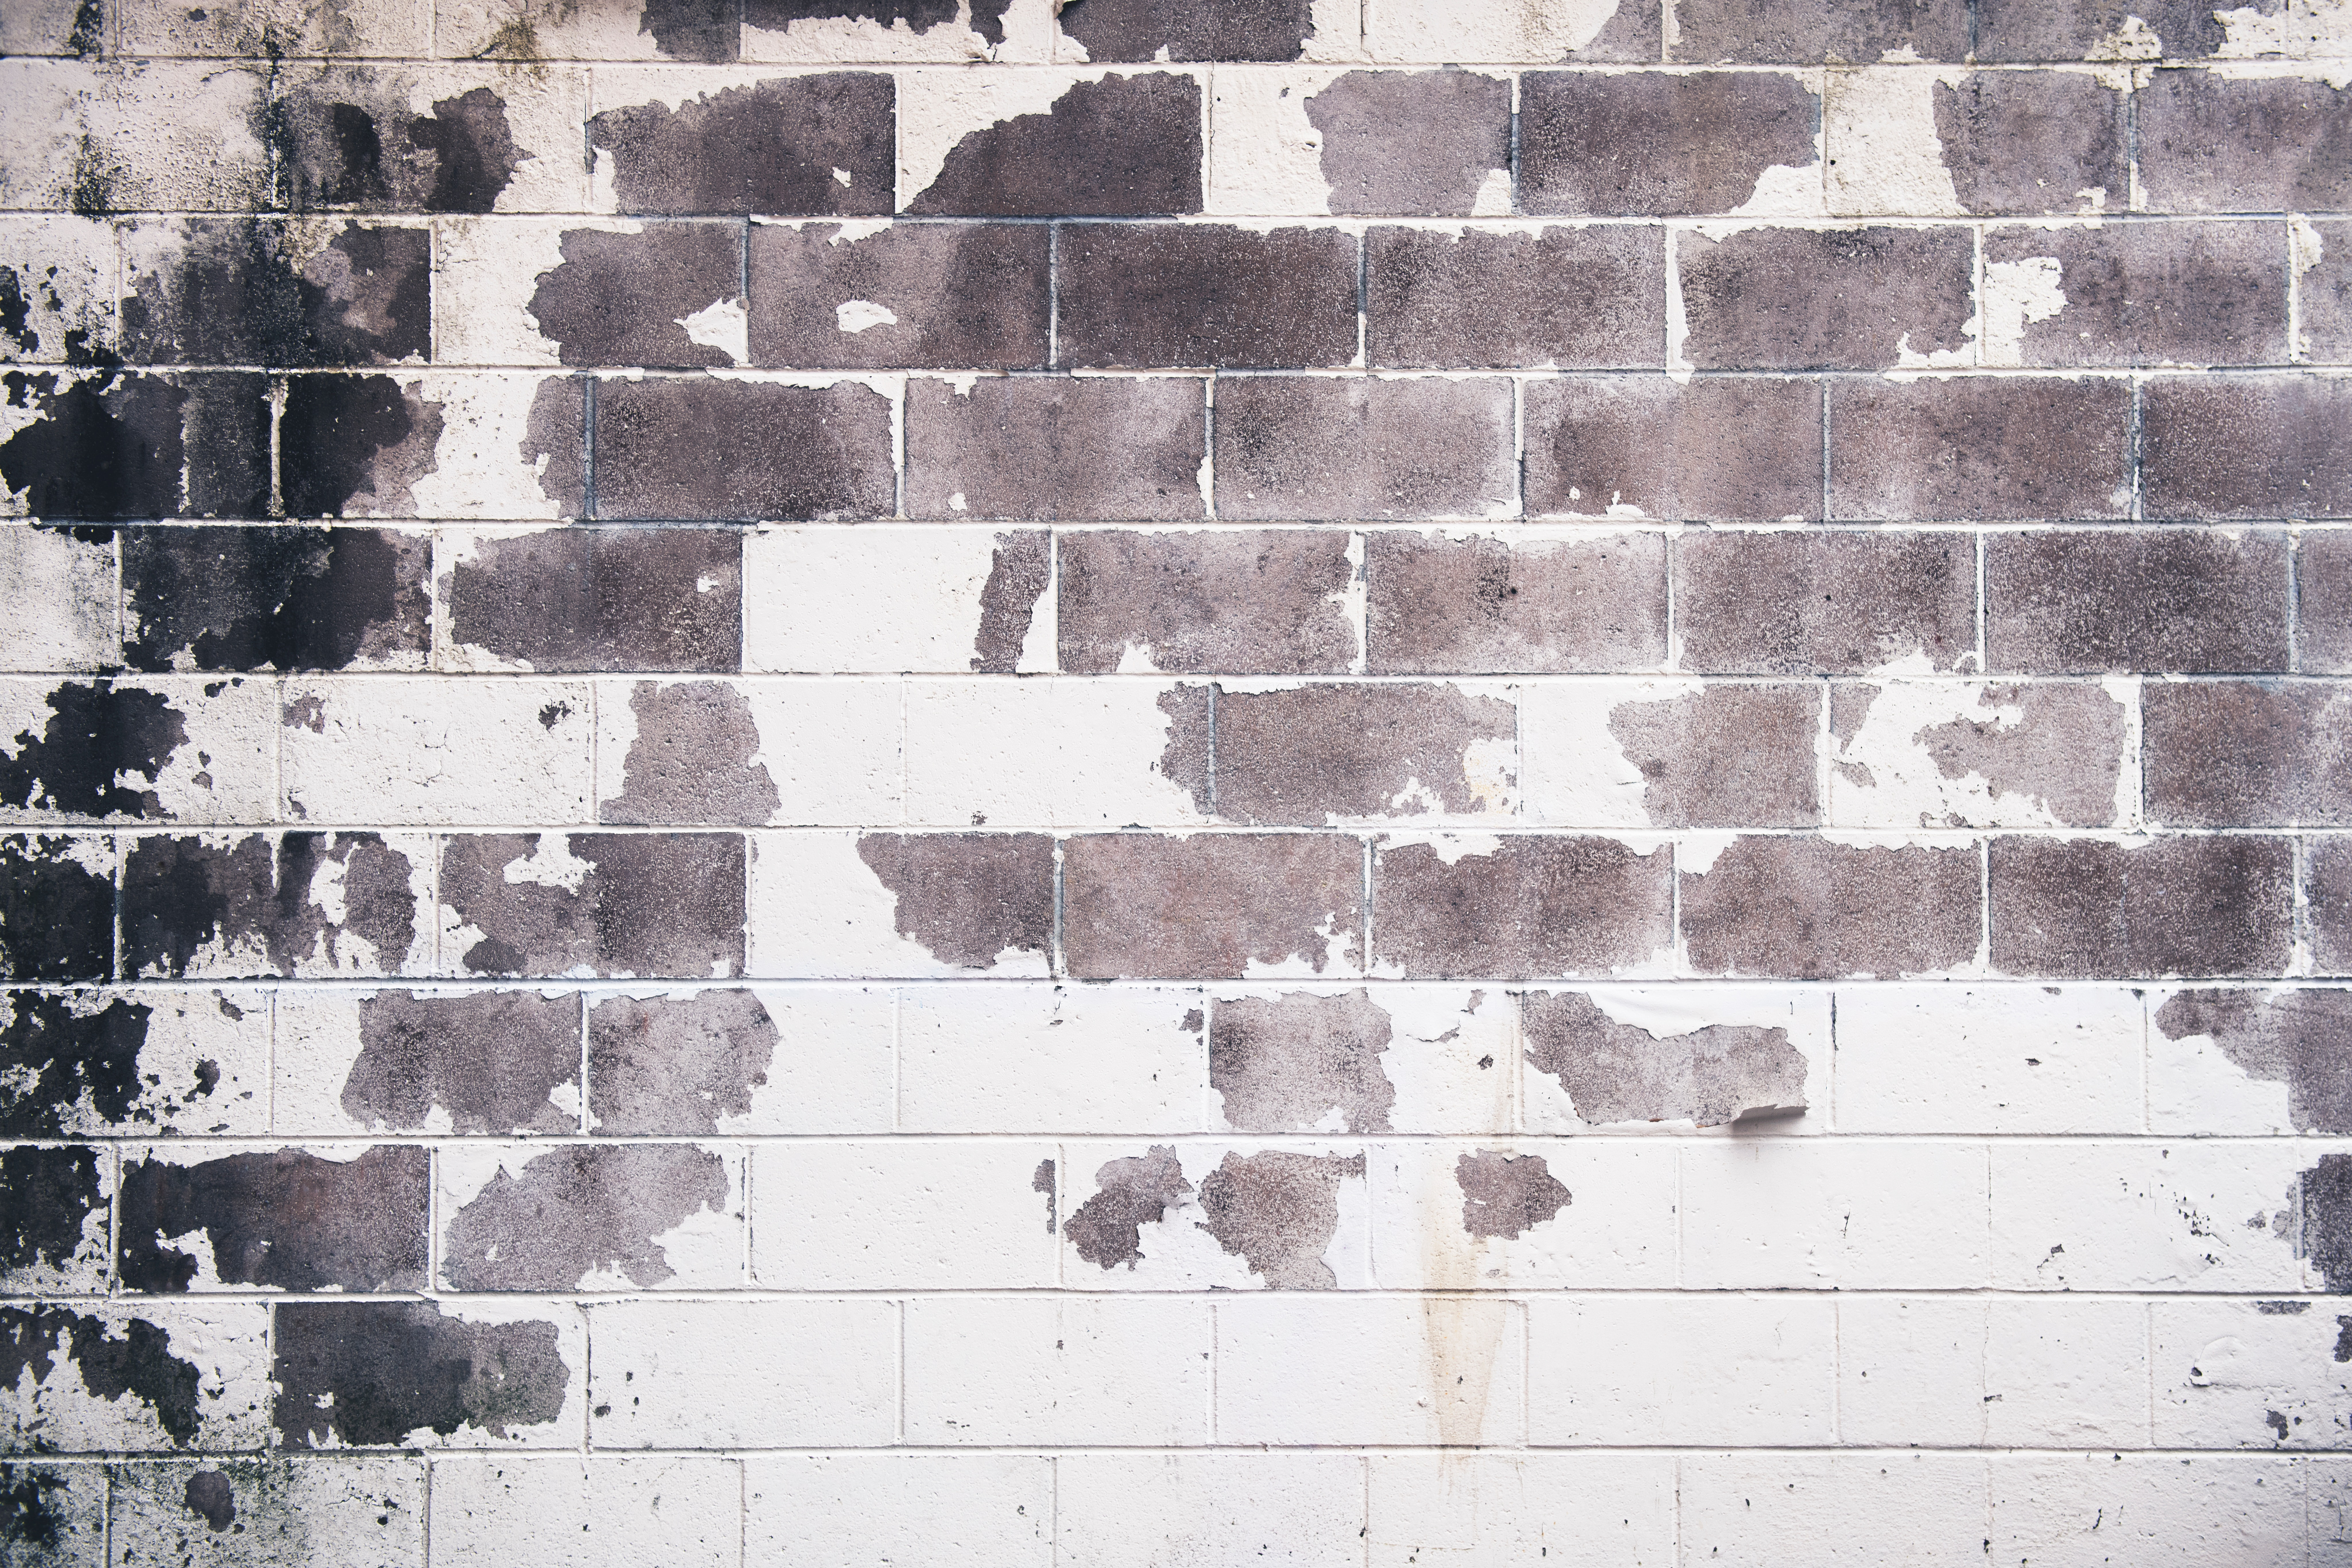 Removing Lead Based Paint on Commercial Properties